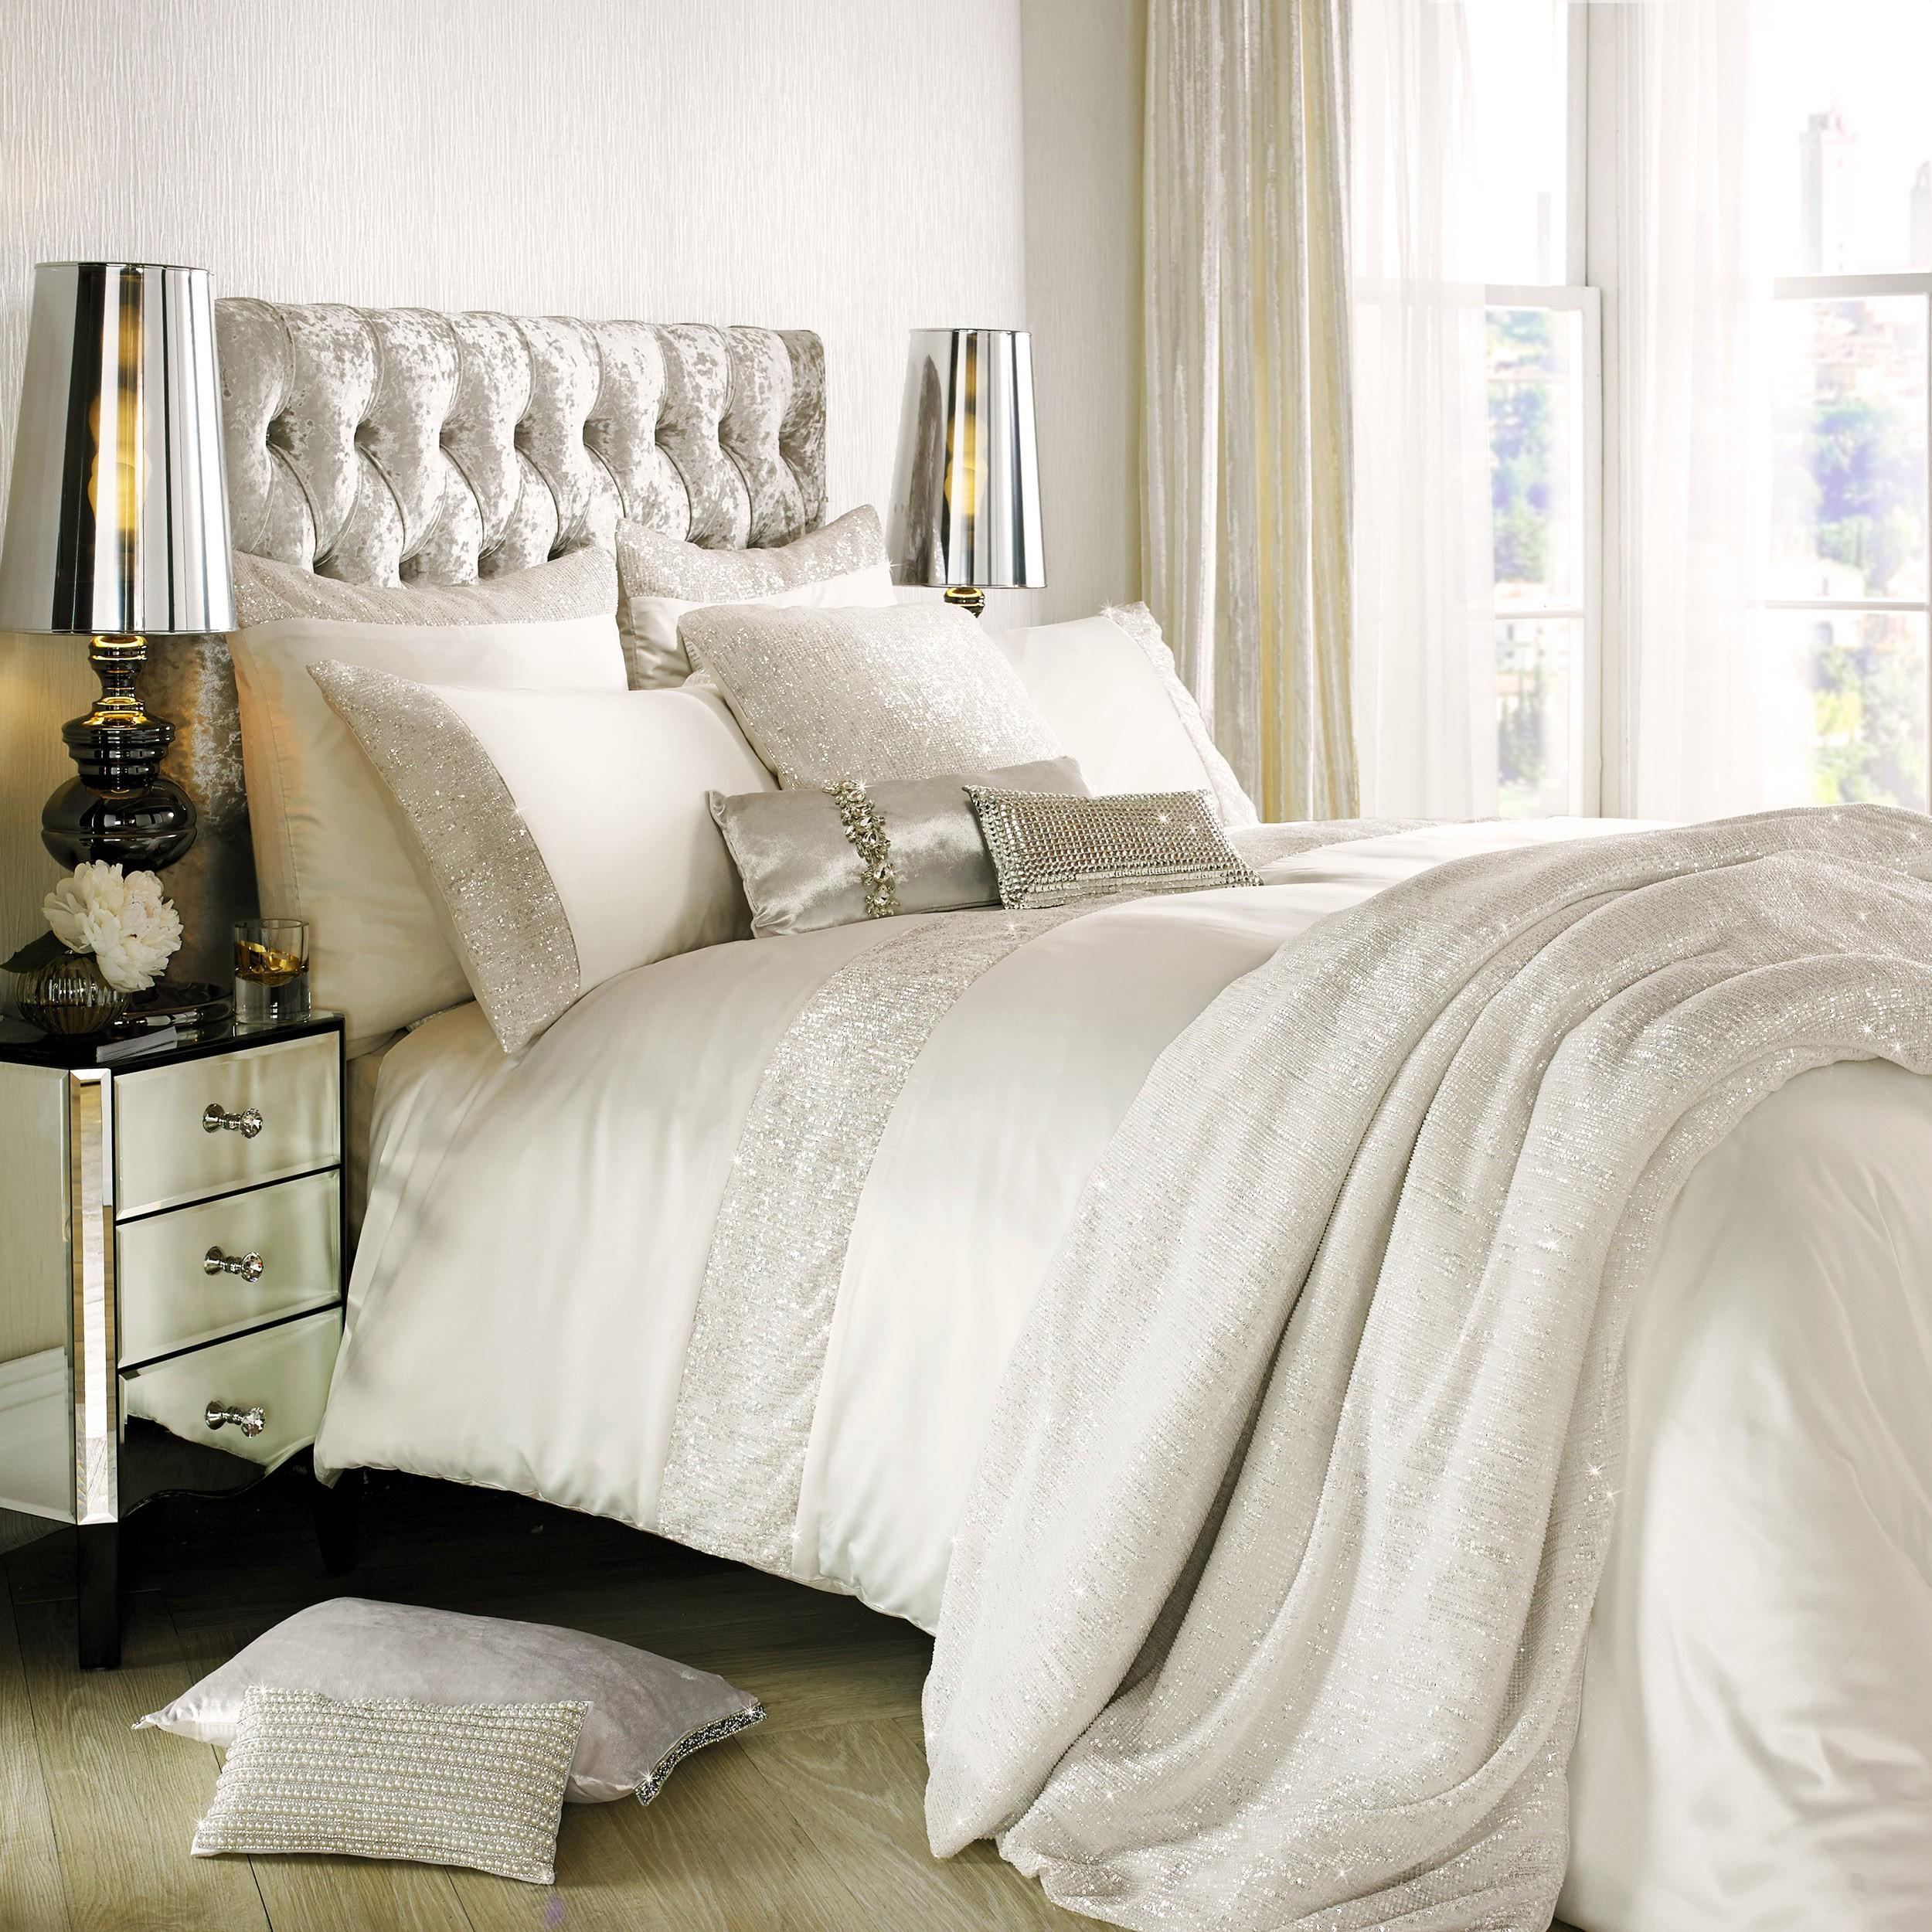 Kylie Minogue Astor Bedding Collection Oyster Ponden Home